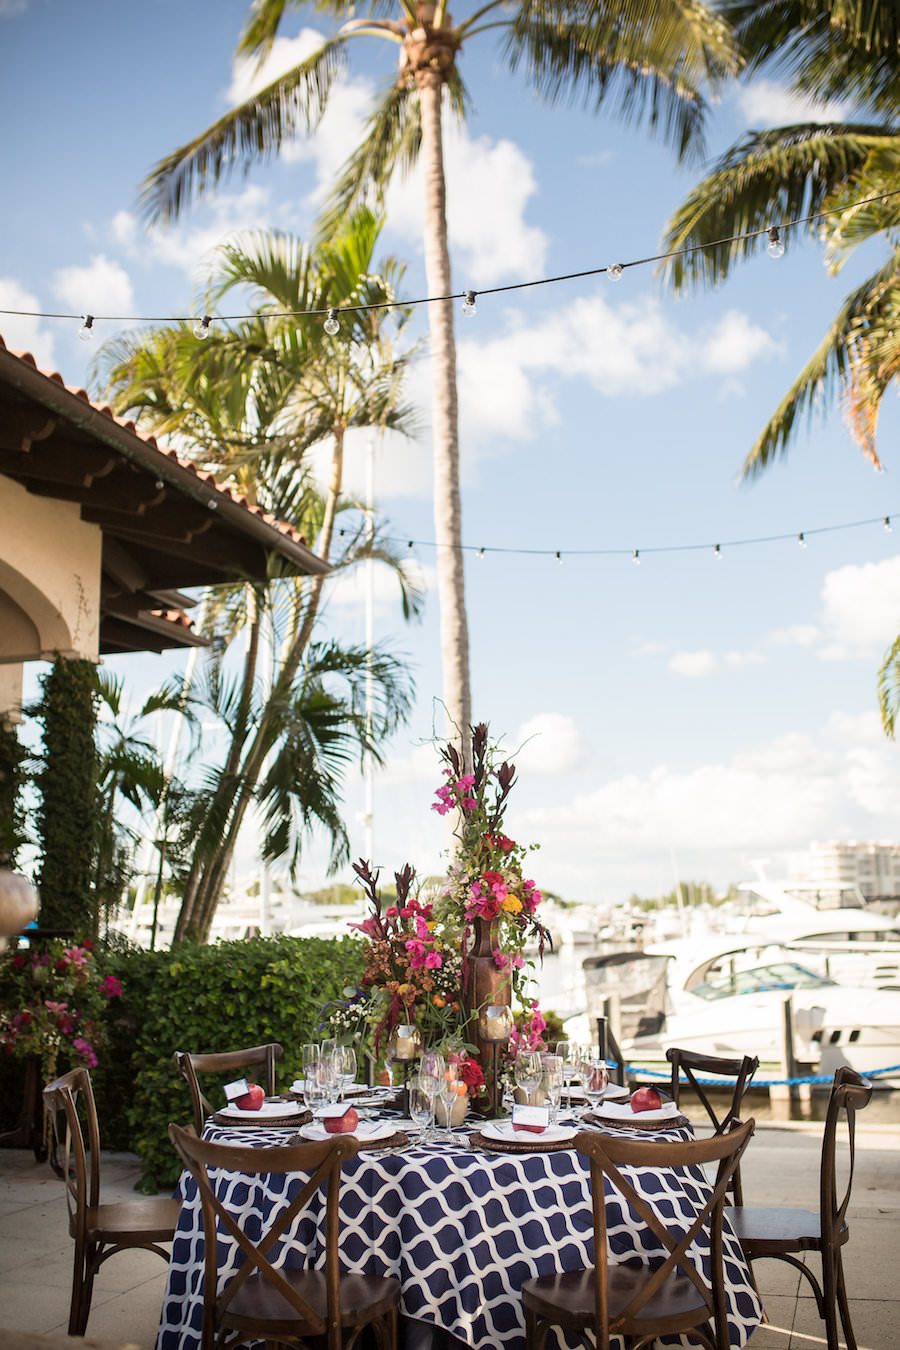 Outdoor Nautical Inspired Wedding Reception Decor with Navy Blue and White Linen and French Country Wooden Chairs | Waterfront Sarasota Wedding Venue Longboat Key Club | Sarasota Wedding Planner NK Productions